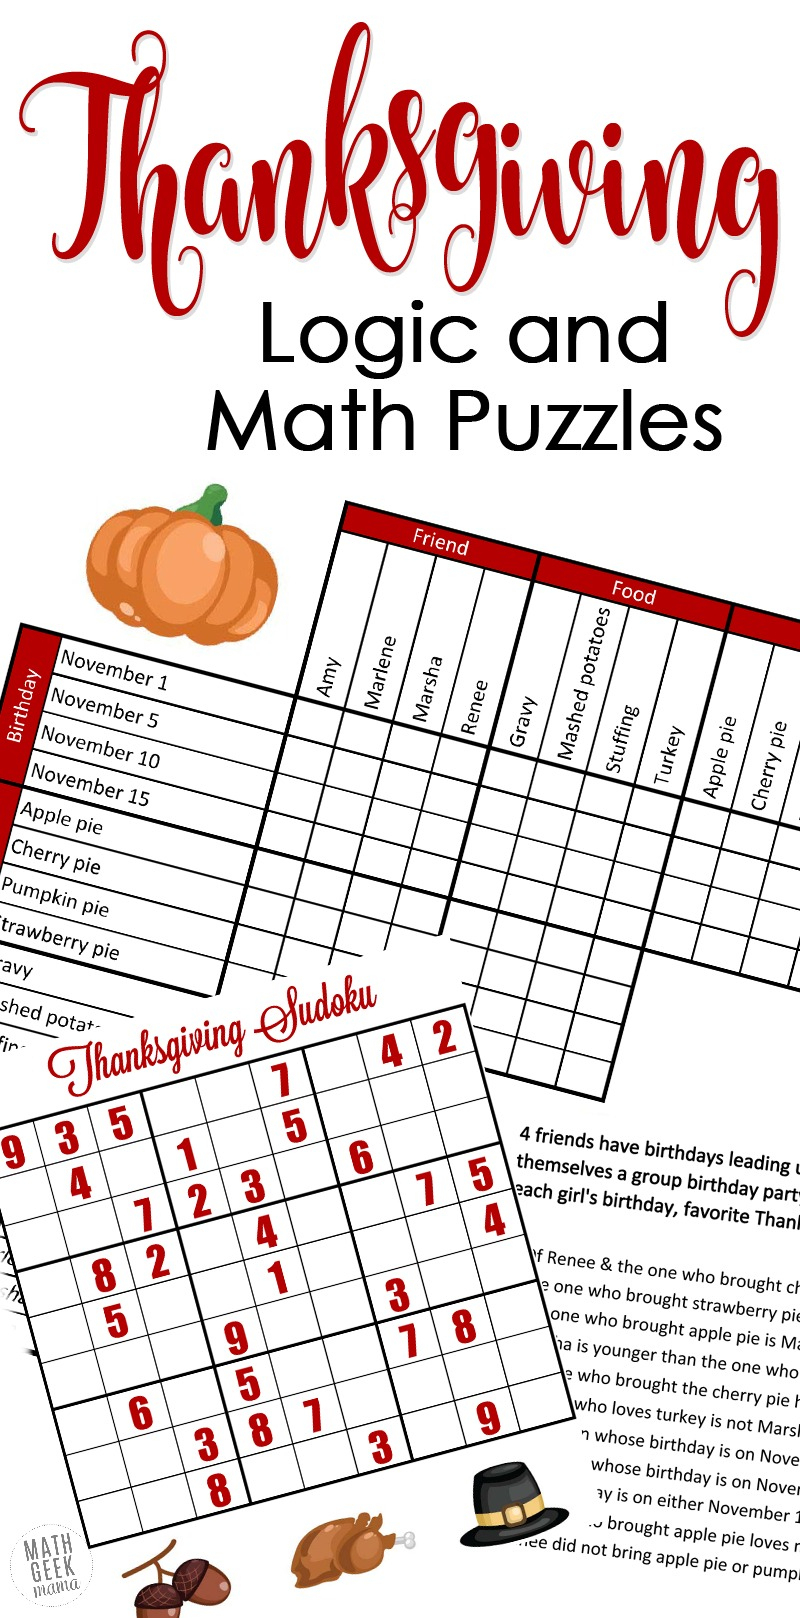 Free} Fun Thanksgiving Math Puzzles For Older Kids - Printable Thanksgiving Puzzles For Adults